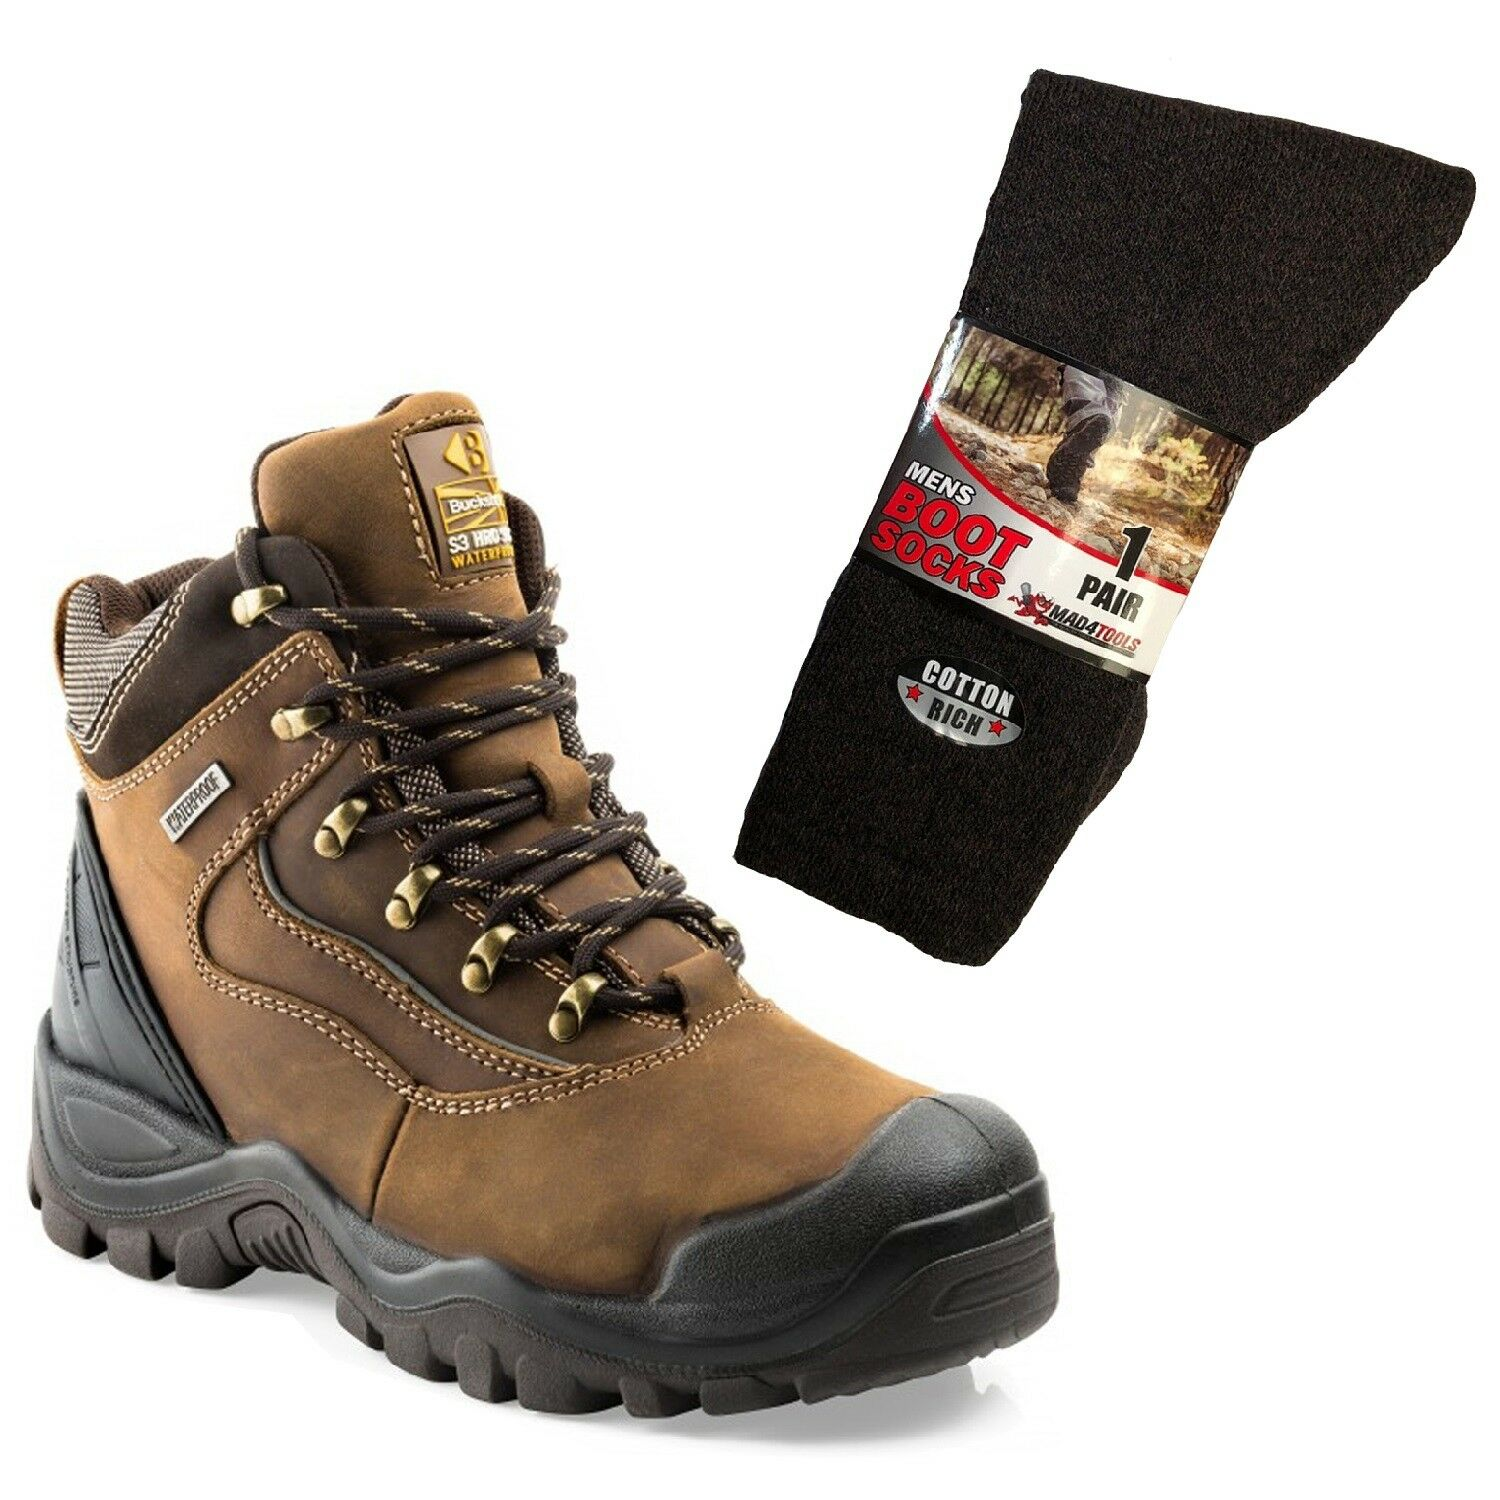 Buckler BSH002BR Waterproof Anti-Scuff Safety Boots Brown & 1 Pair of Socks